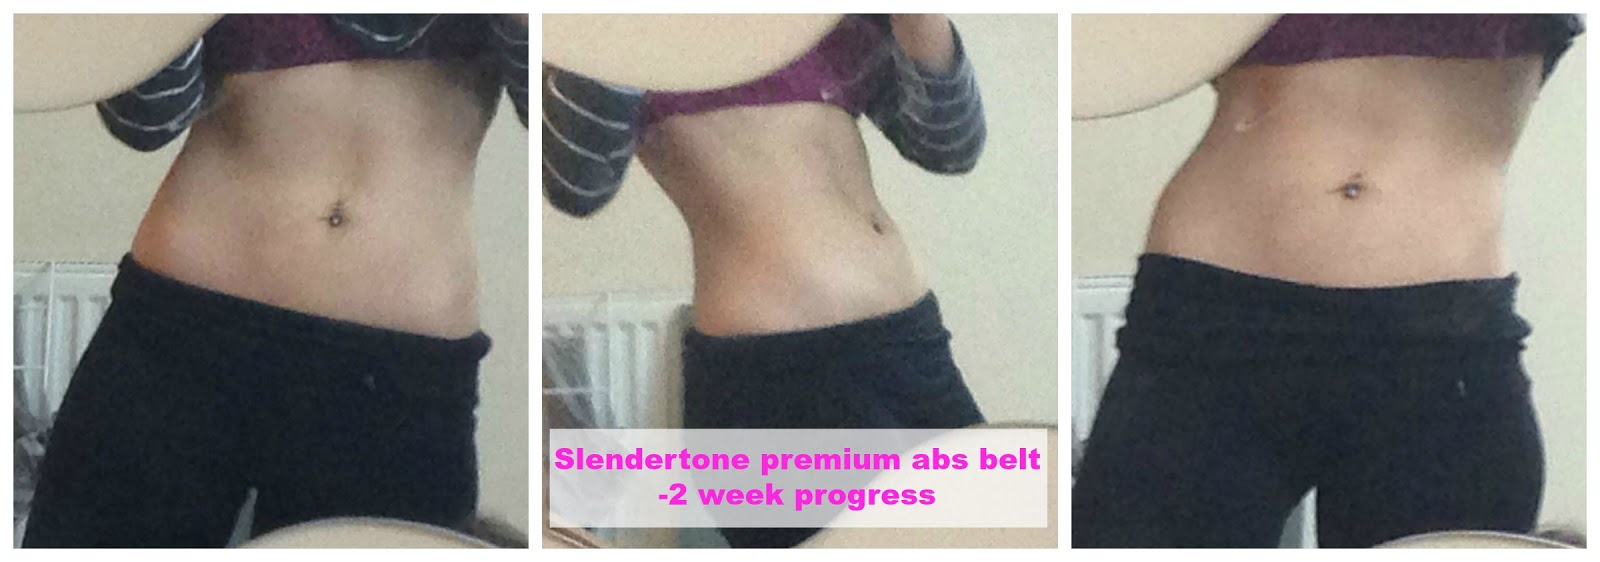 Slendertone Abs belt review - 2 week progress update!